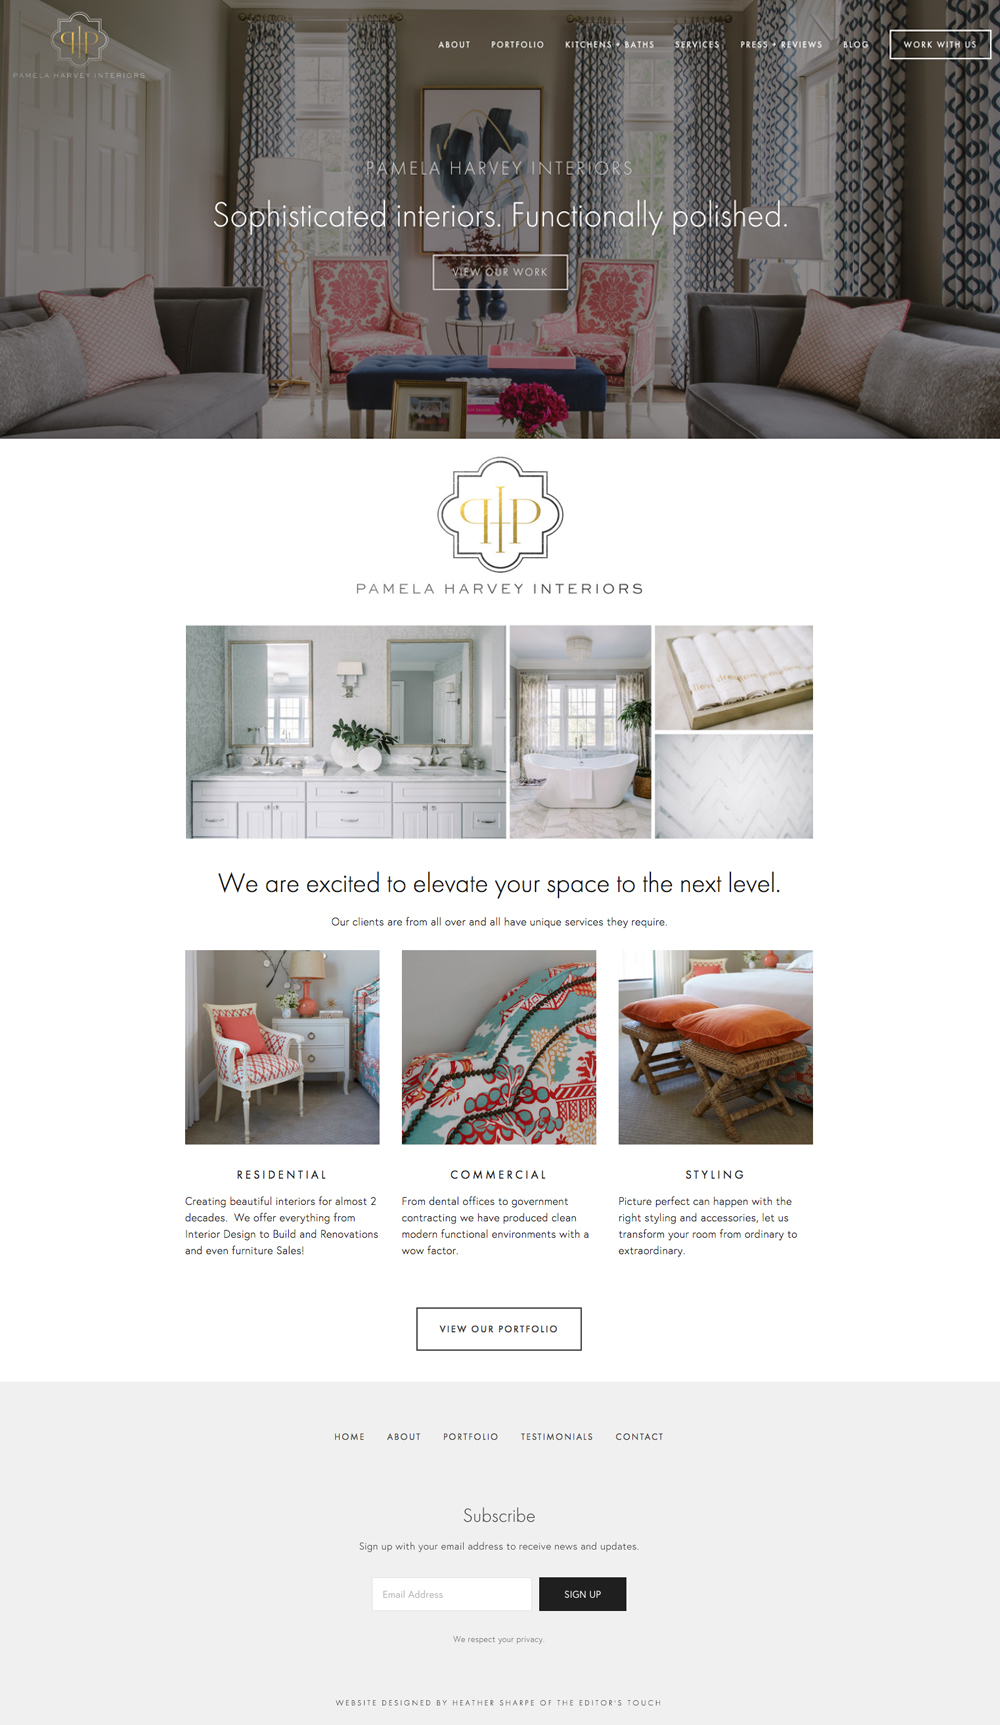 Website Design For Pamela Harvey Interiors | Squarespace Website Designer  | The Editor's Touch